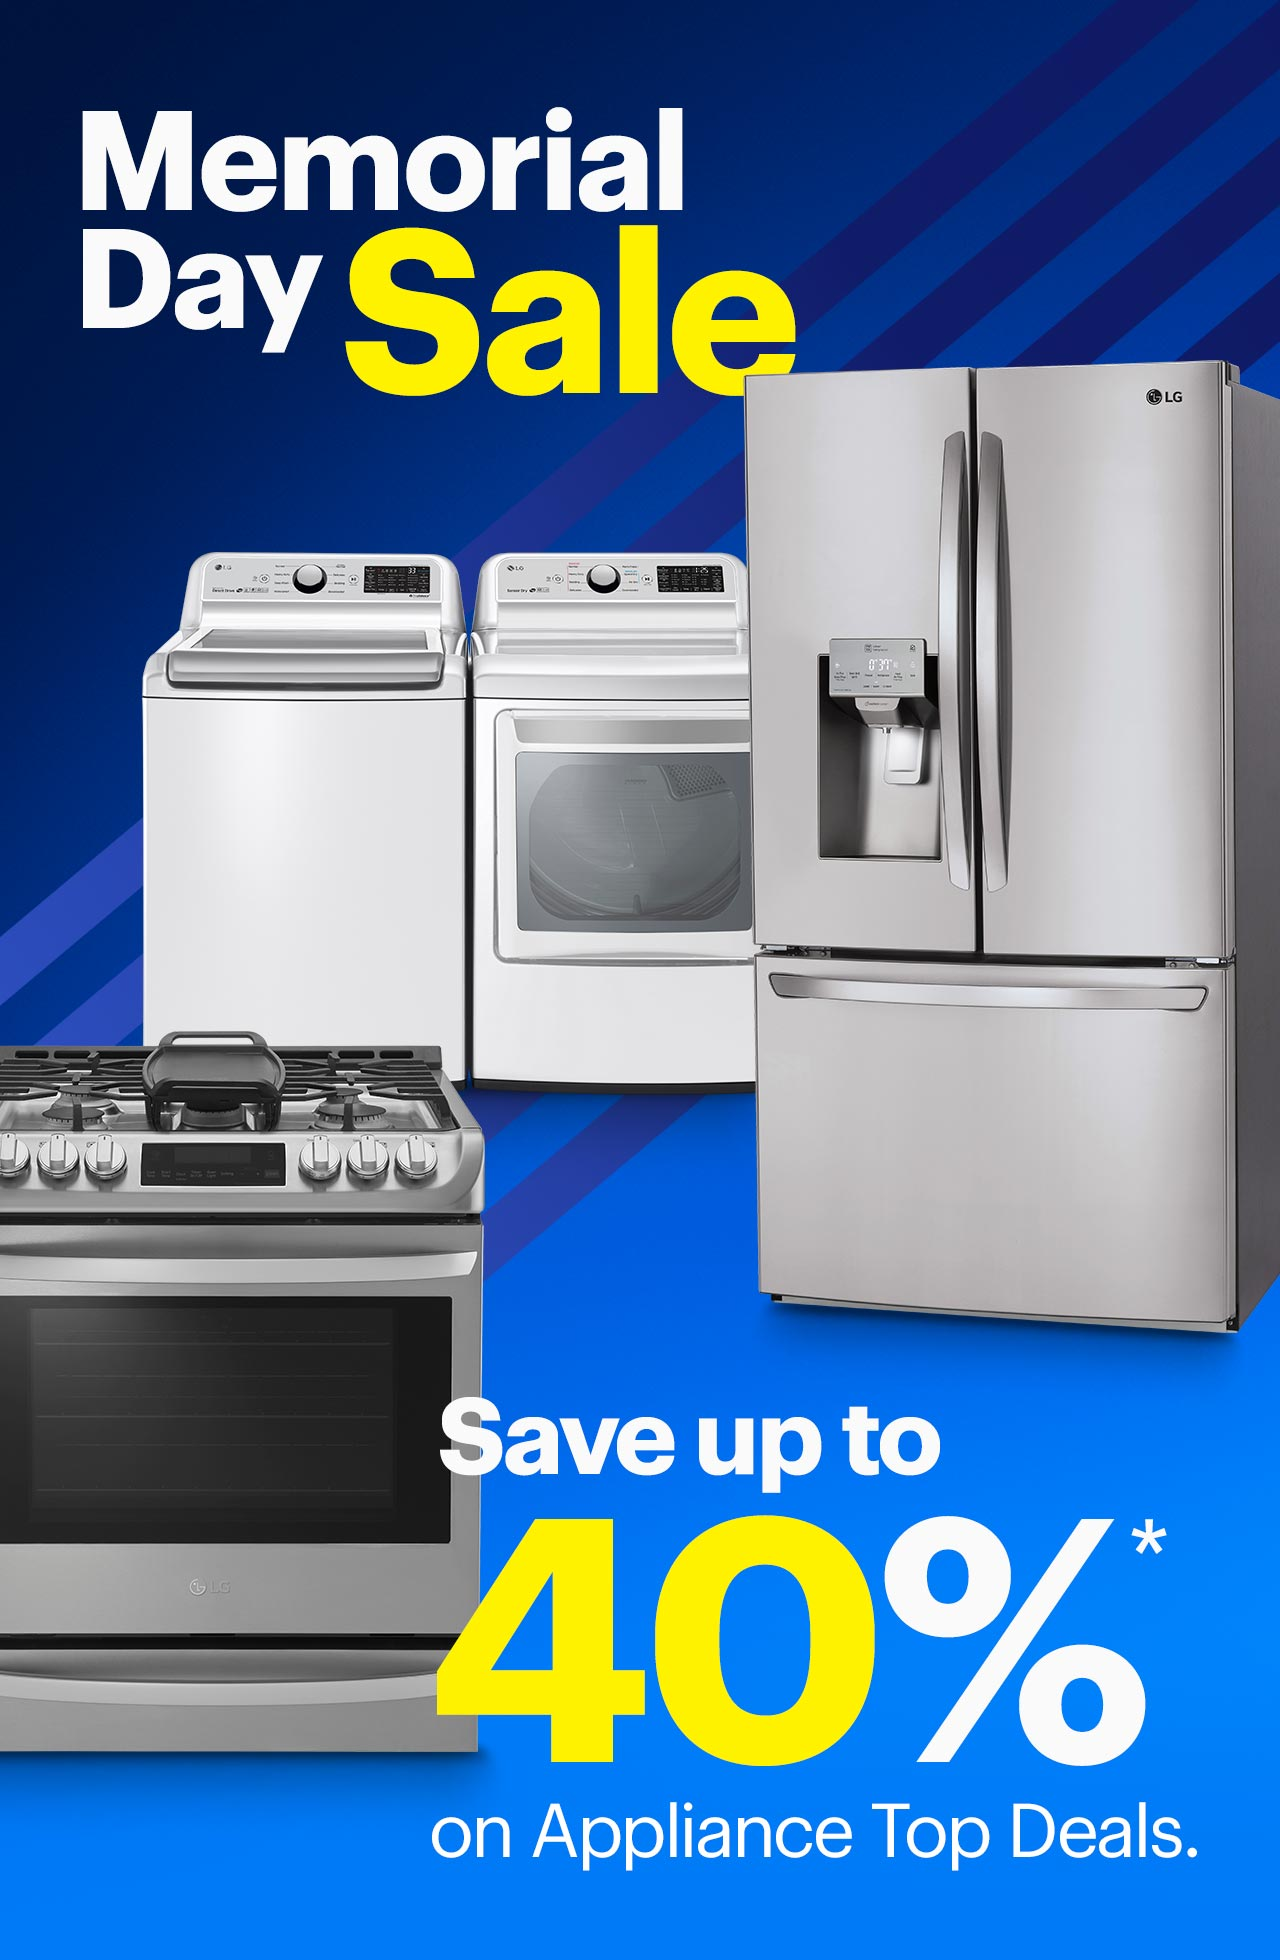 Best Buy Ends Today Save Up To 40 On Appliance Top Deals With